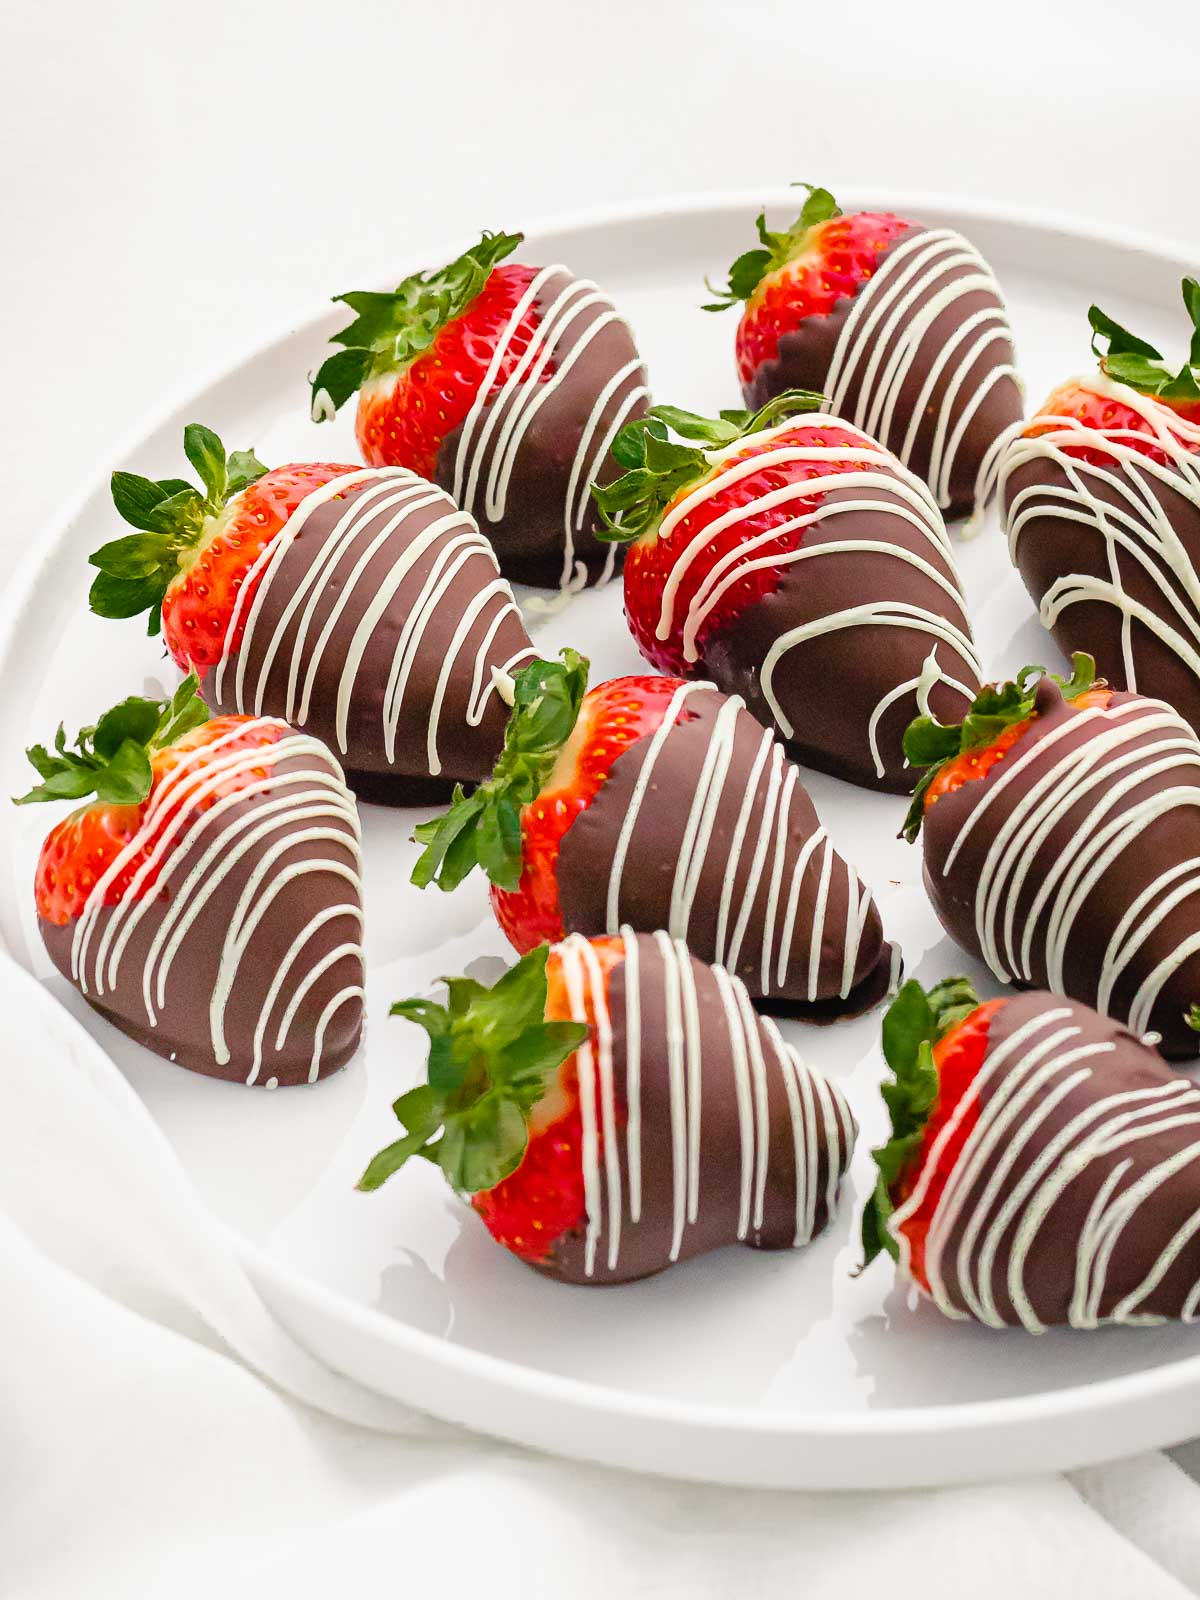 chocolate covered strawberries decorated with white chocolate drizzle on a white plate